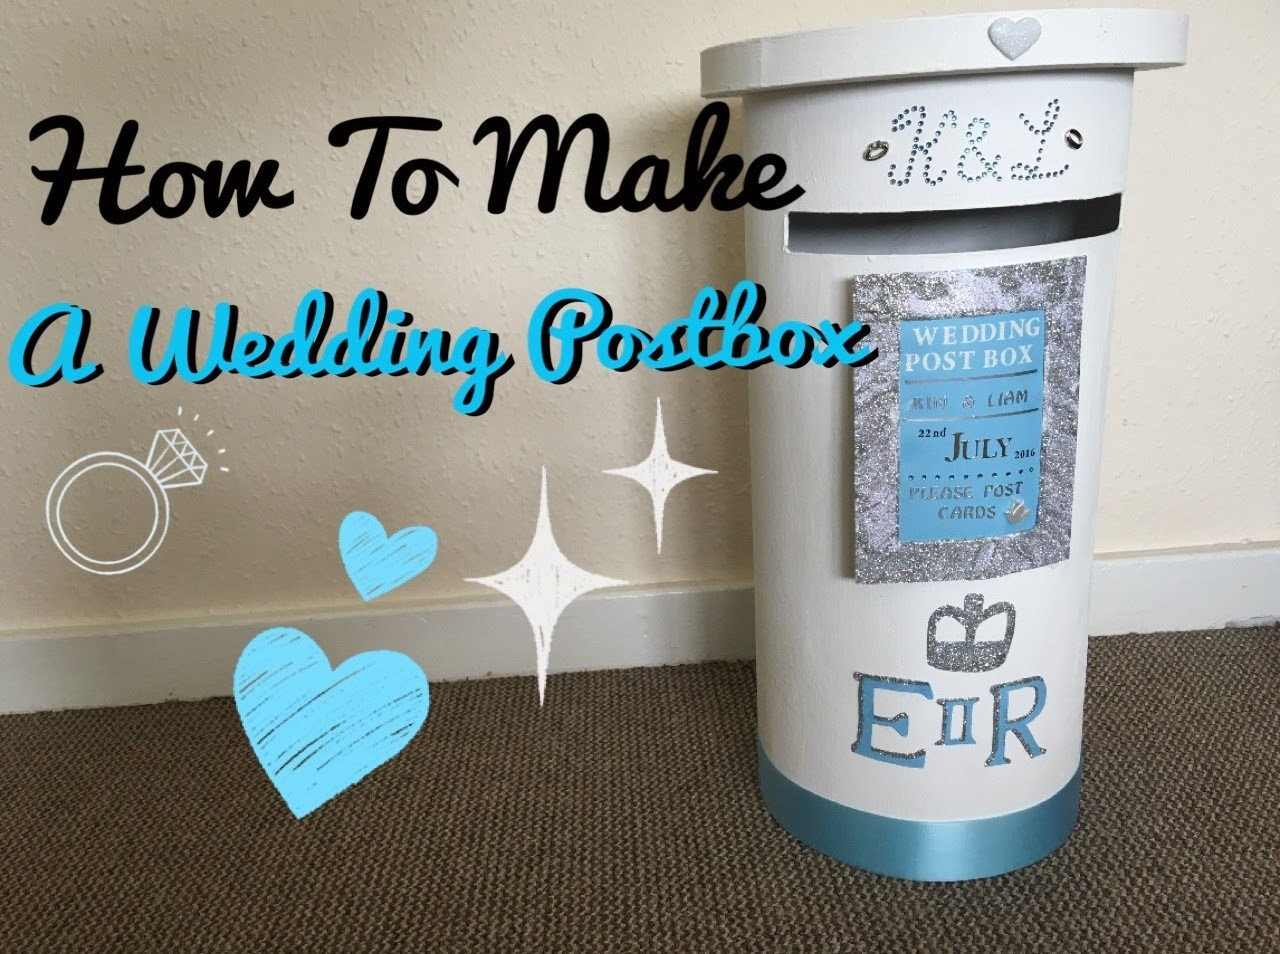 How To Make: A Wedding Postbox